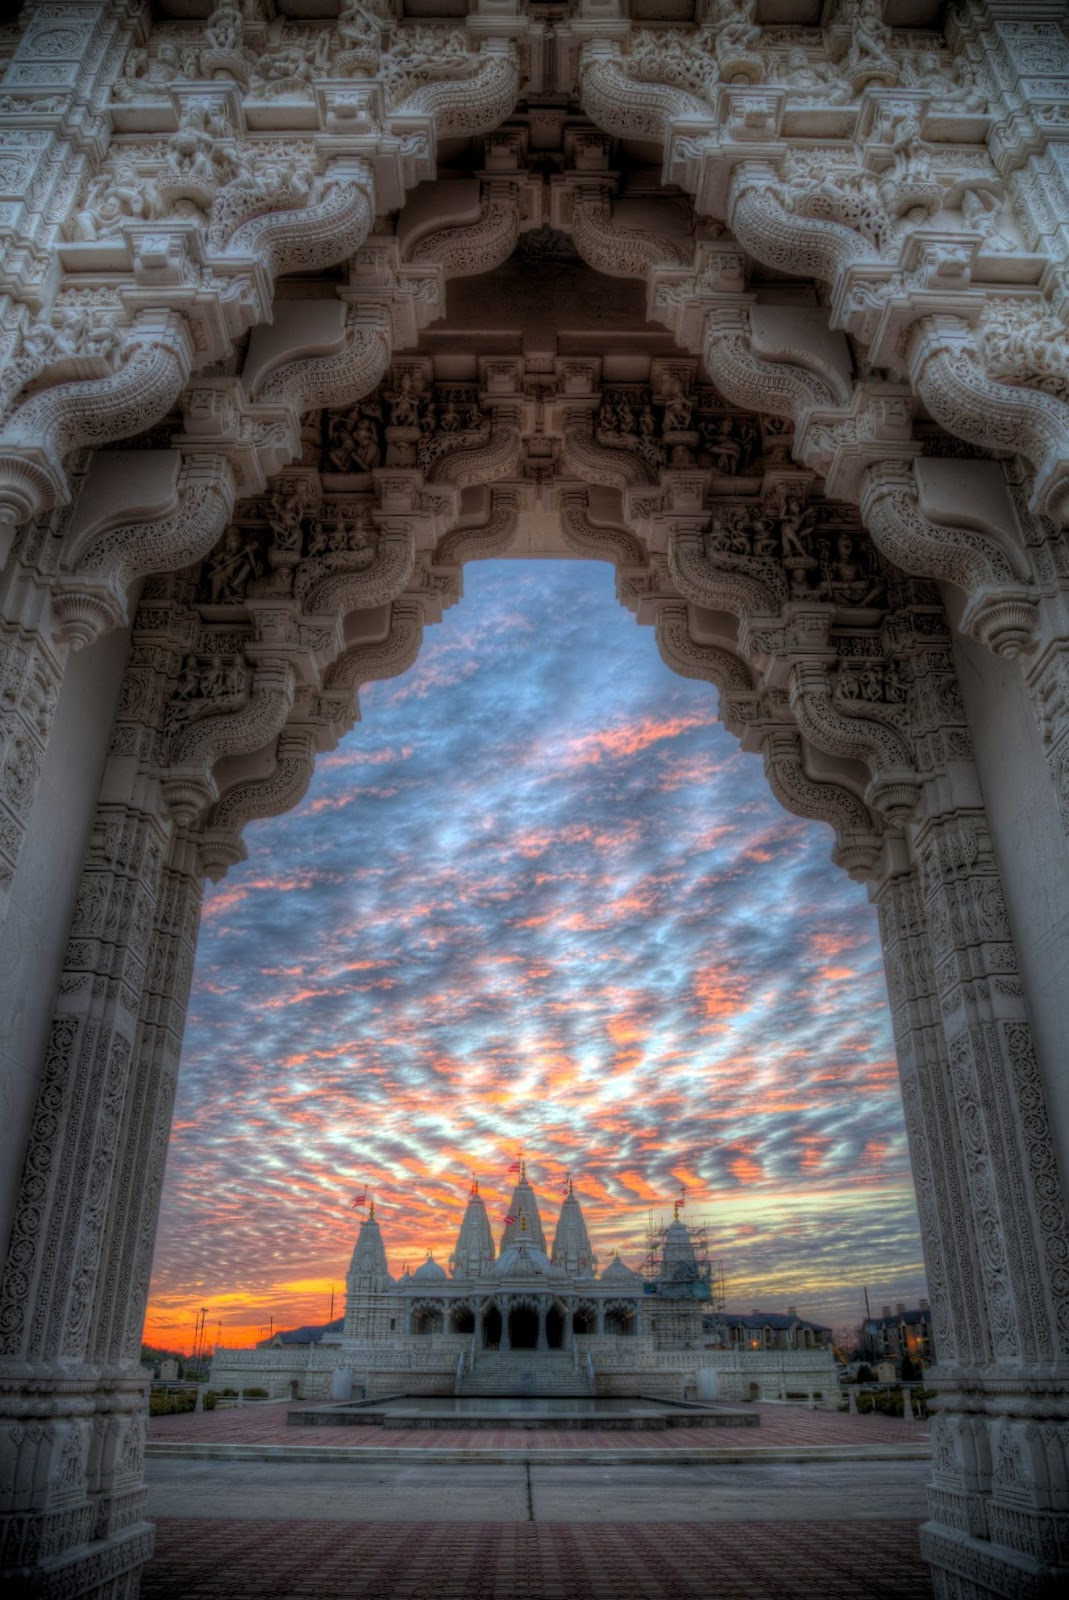 HDR photo of BAPS Shri Swaminarayan Mandir - Houston at sunset- in Stafford, Texas